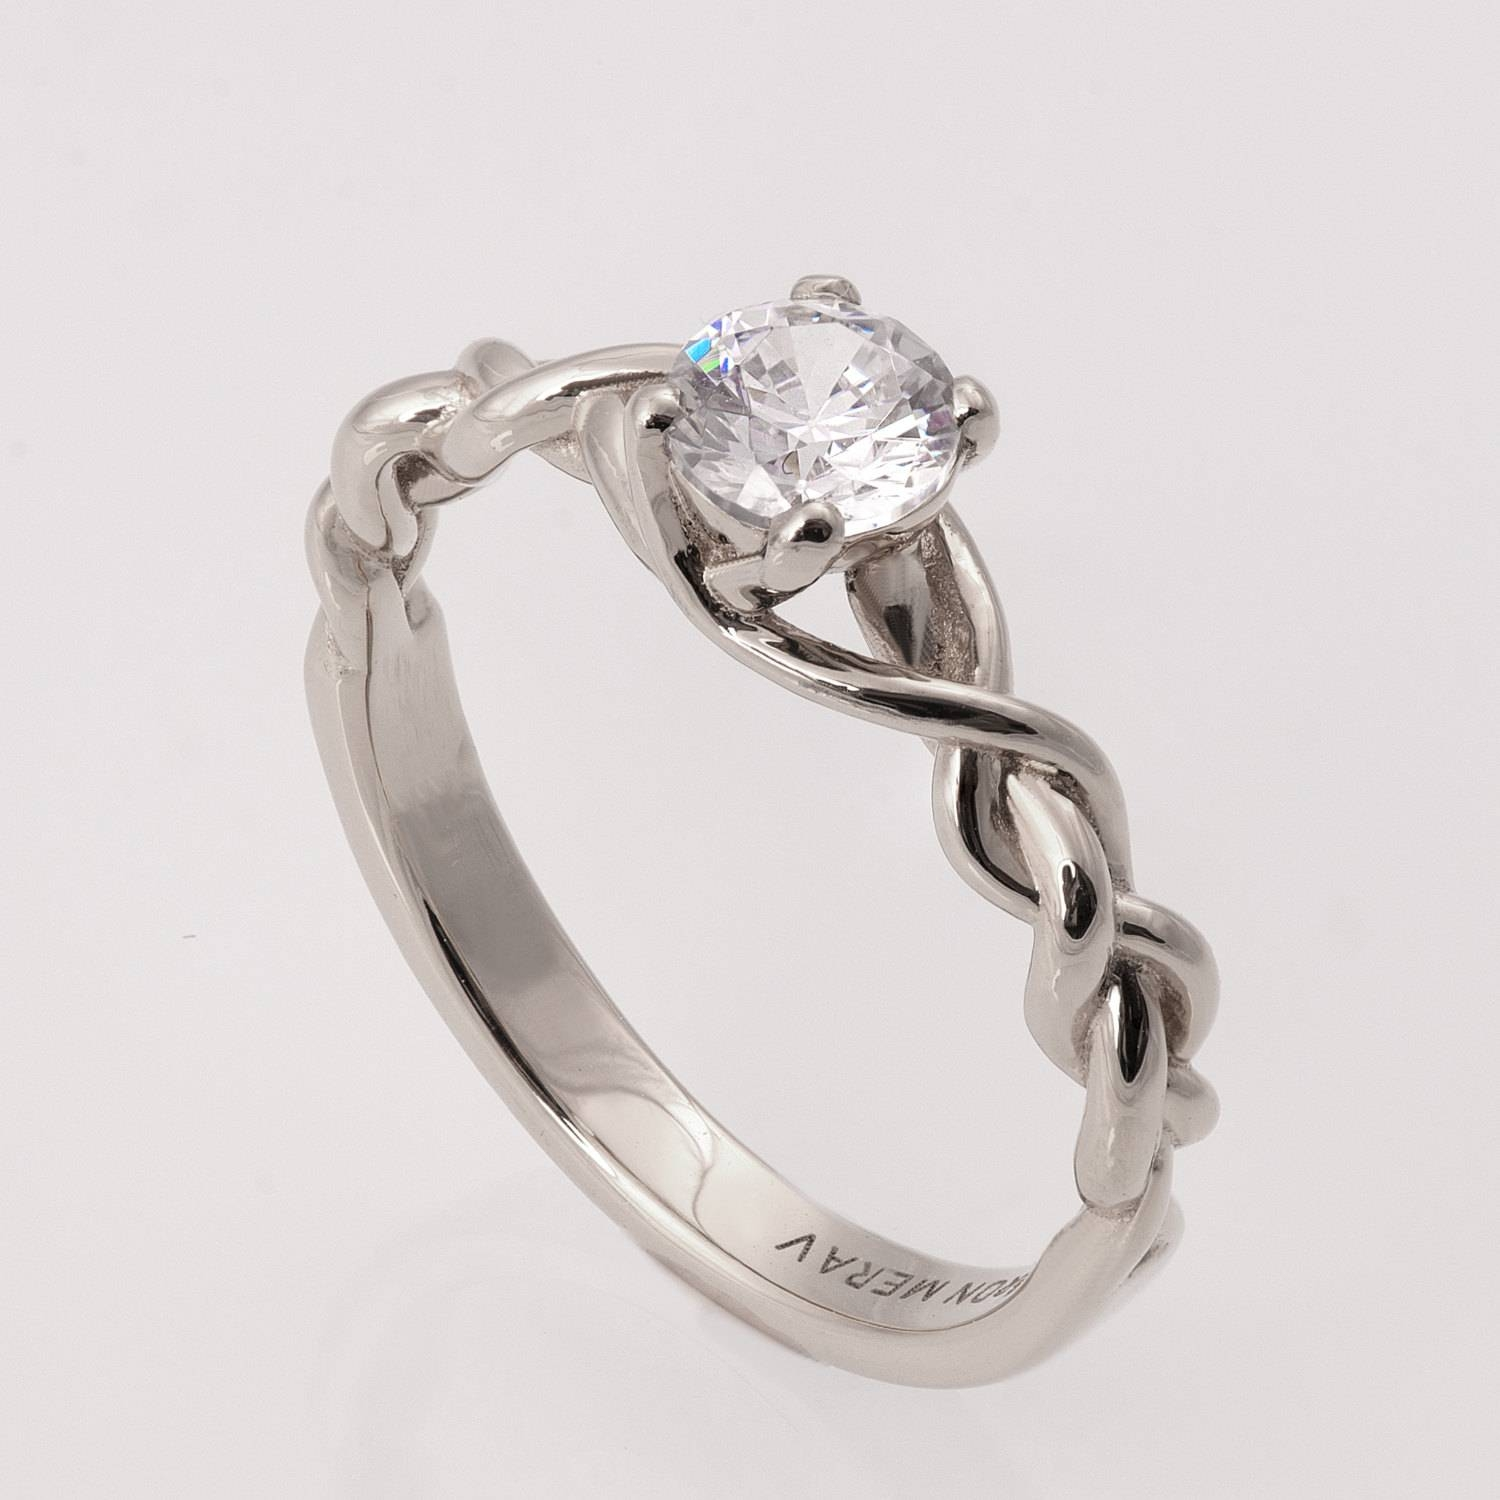 Braided Engagement Ring No.2 14k White Gold And Diamond With Regard To Braided Wedding Bands (Gallery 12 of 15)